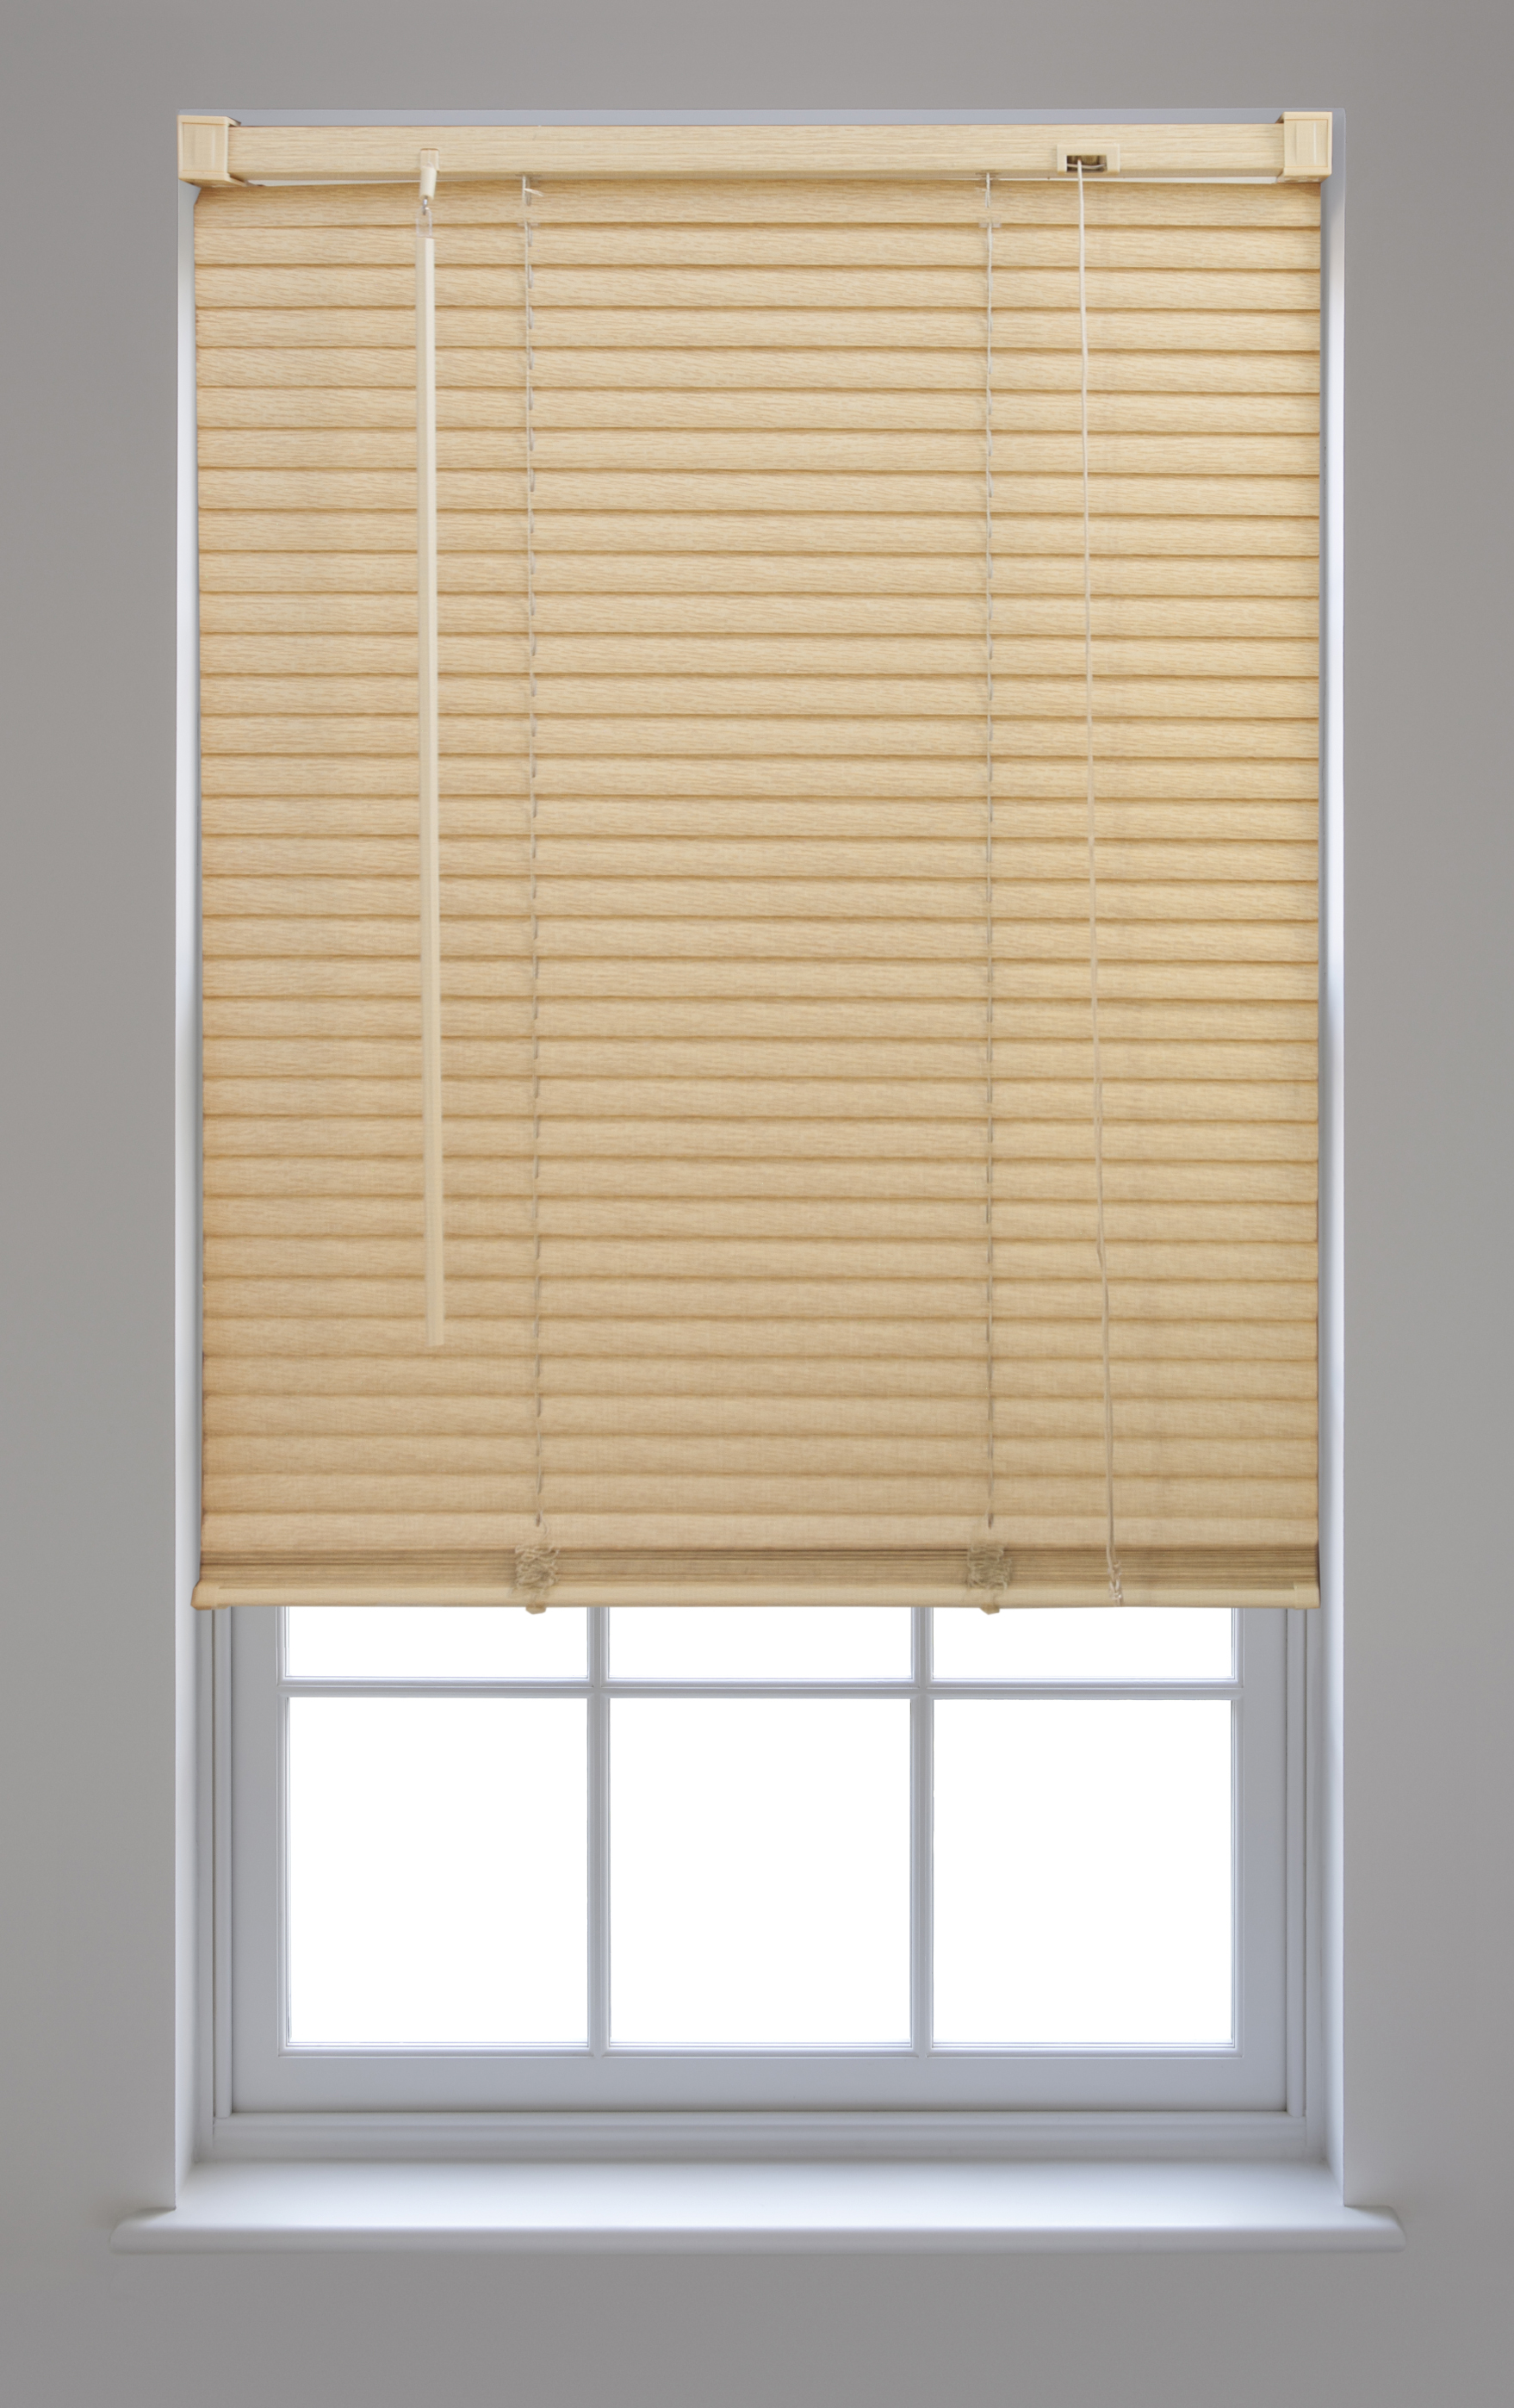 Pvc venetian blinds trimmable window home office blind new for Pvc window frame